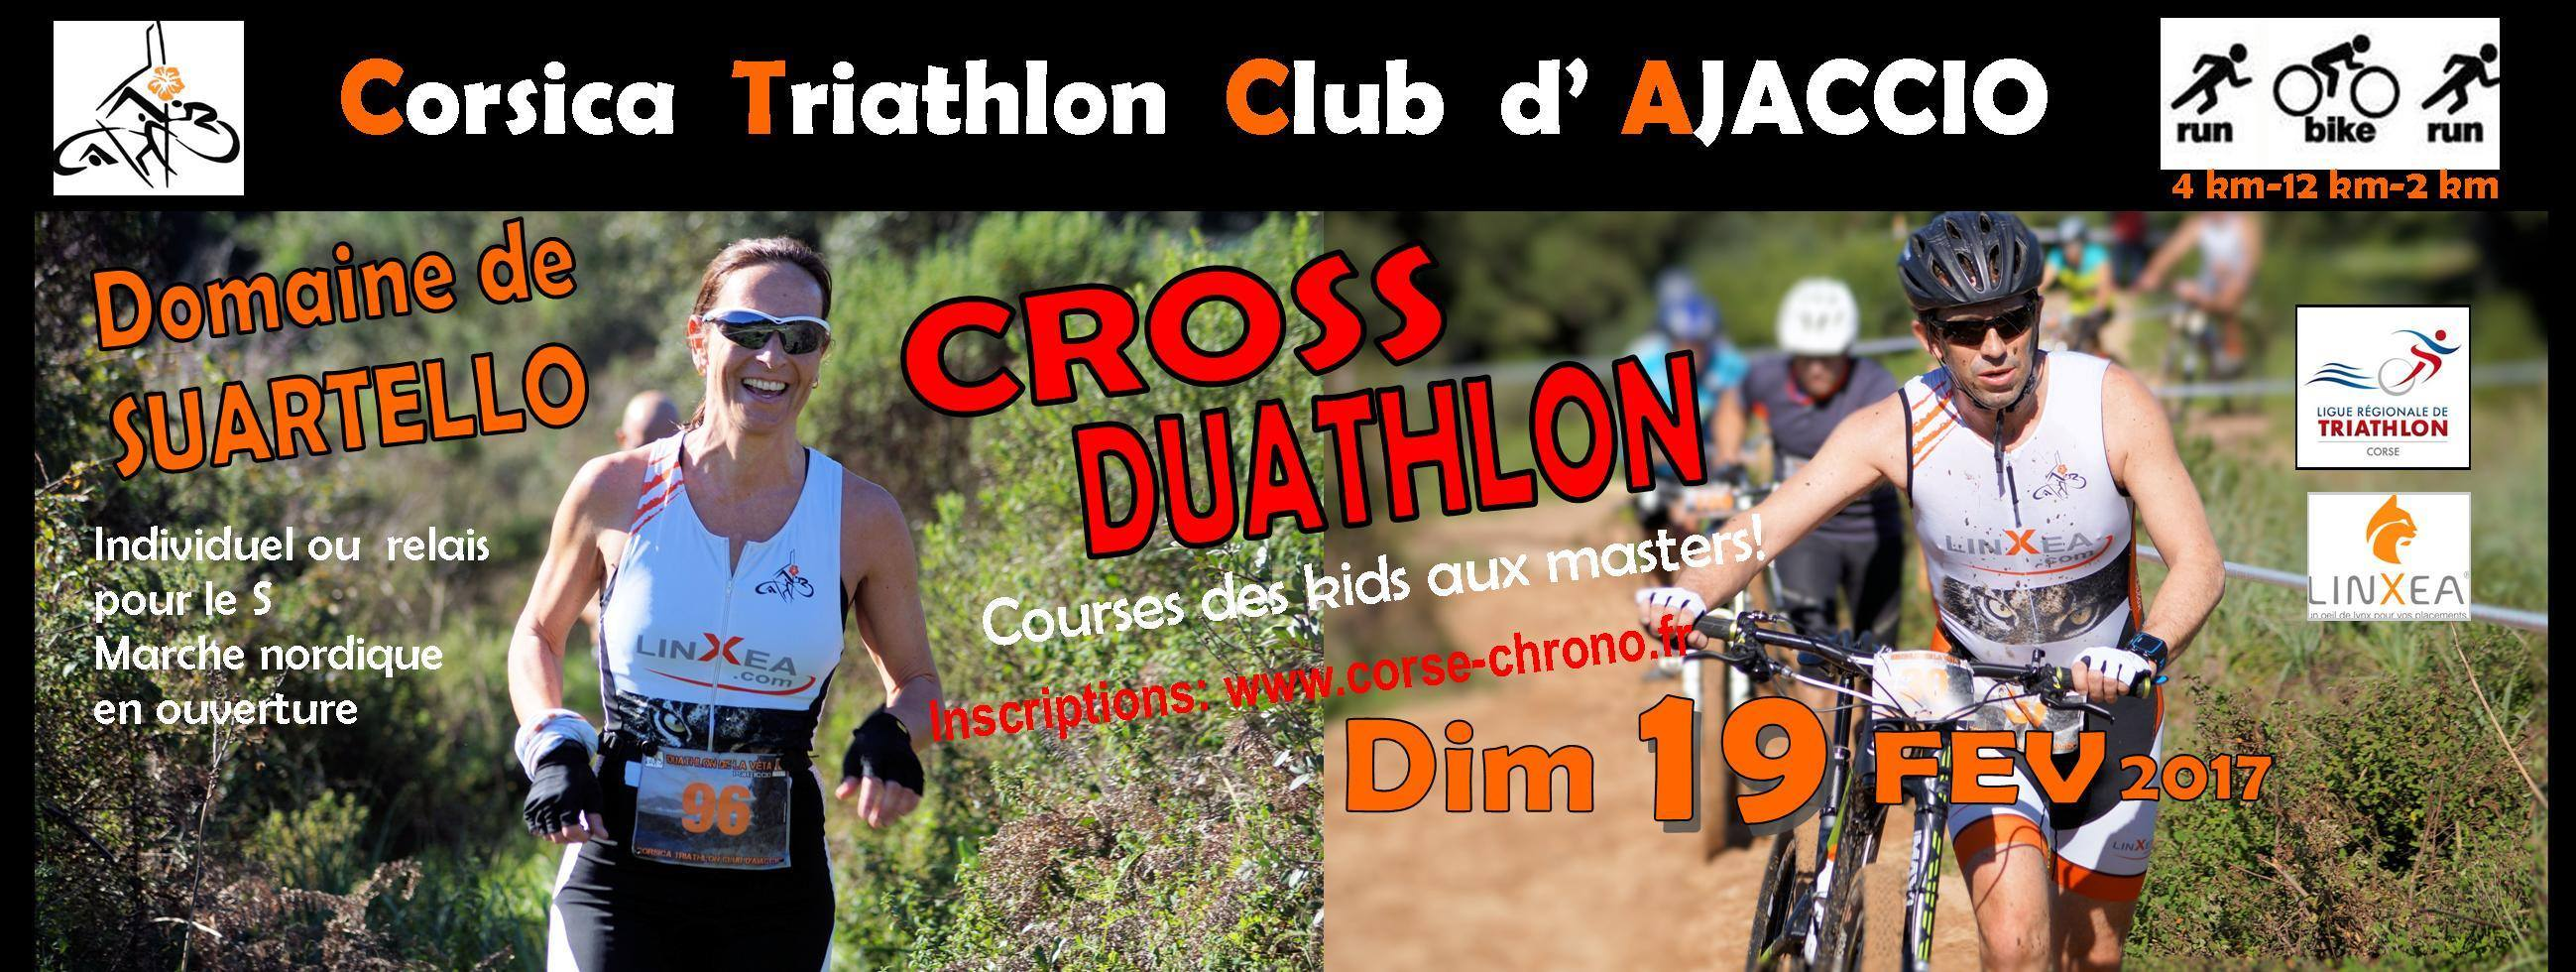 1er Cross Duathlon du Domaine de Suartello